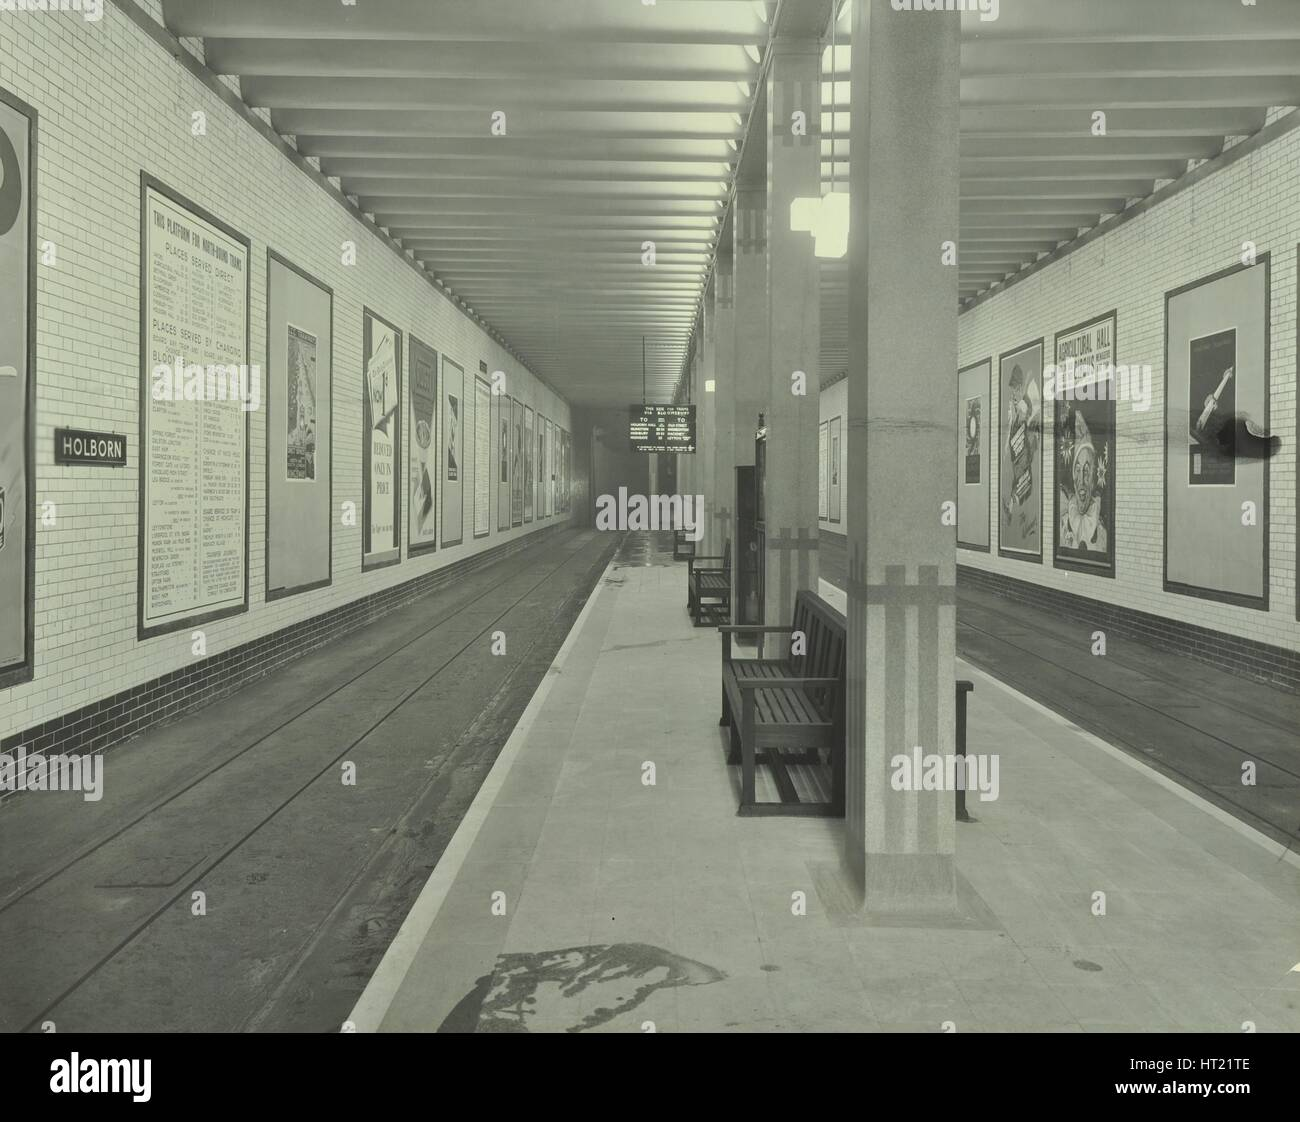 Platform with advertising posters, Holborn Underground Tram Station, London, 1931. Artist: Unknown. - Stock Image